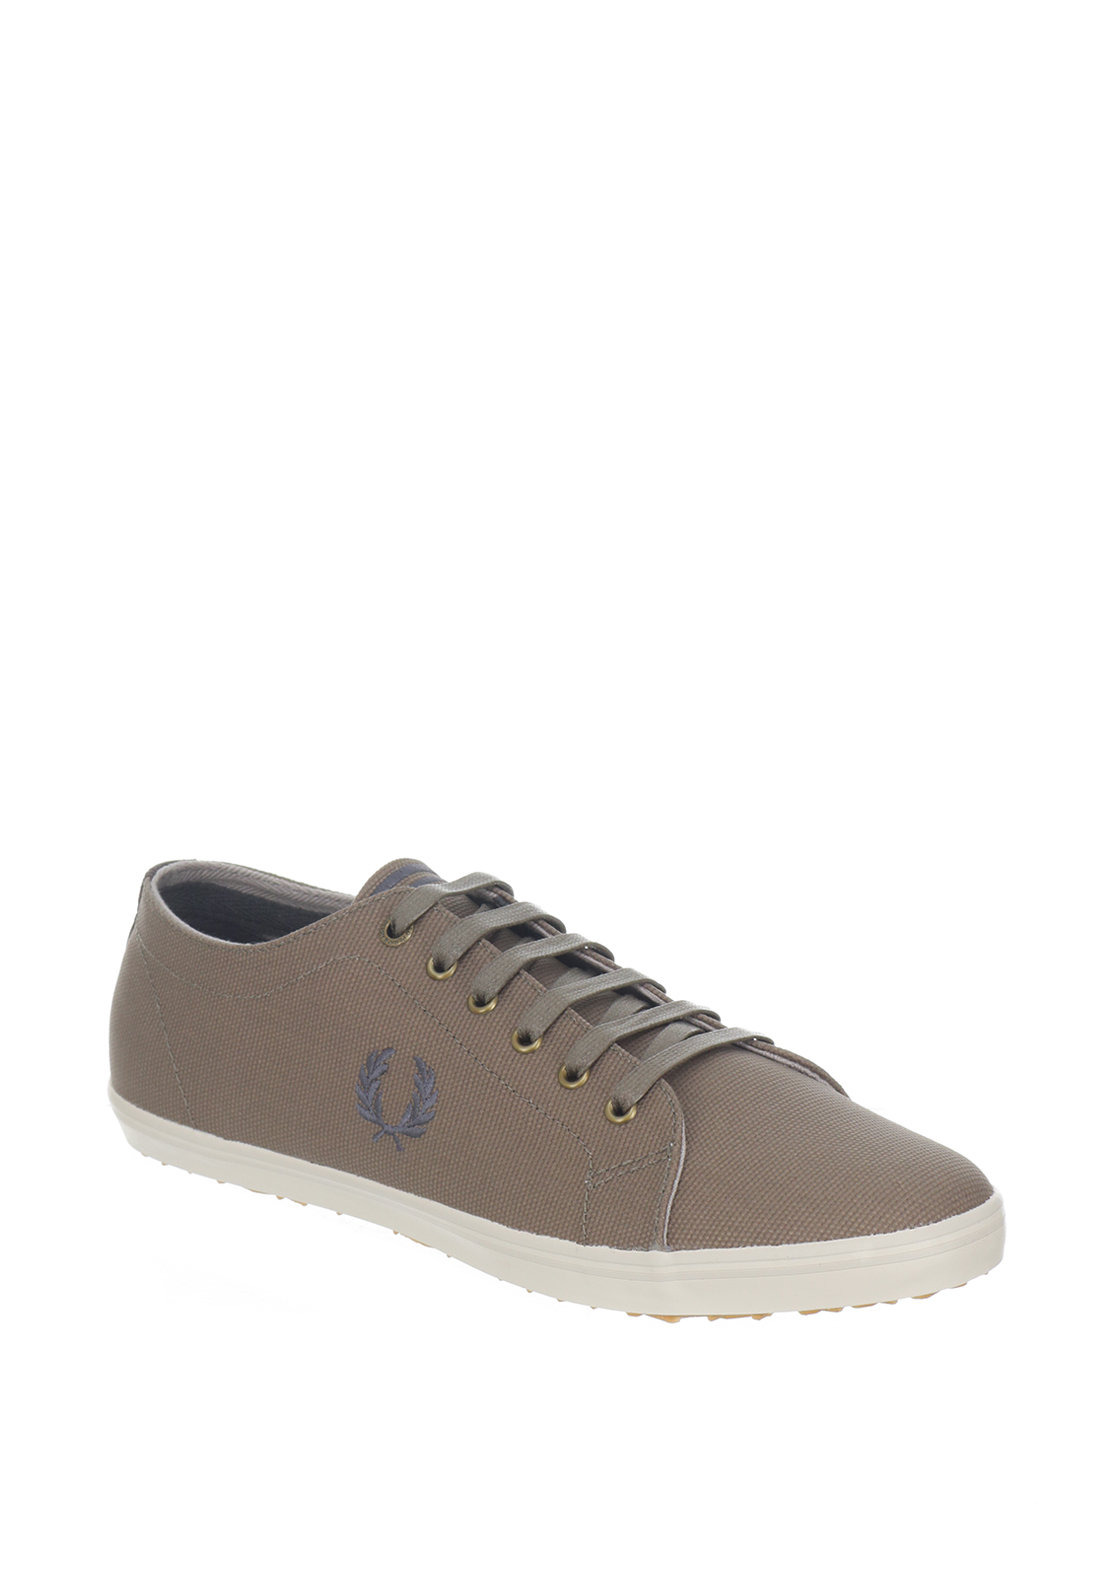 Fred Perry Kingston Coated Canvas Trainers, Olive Green